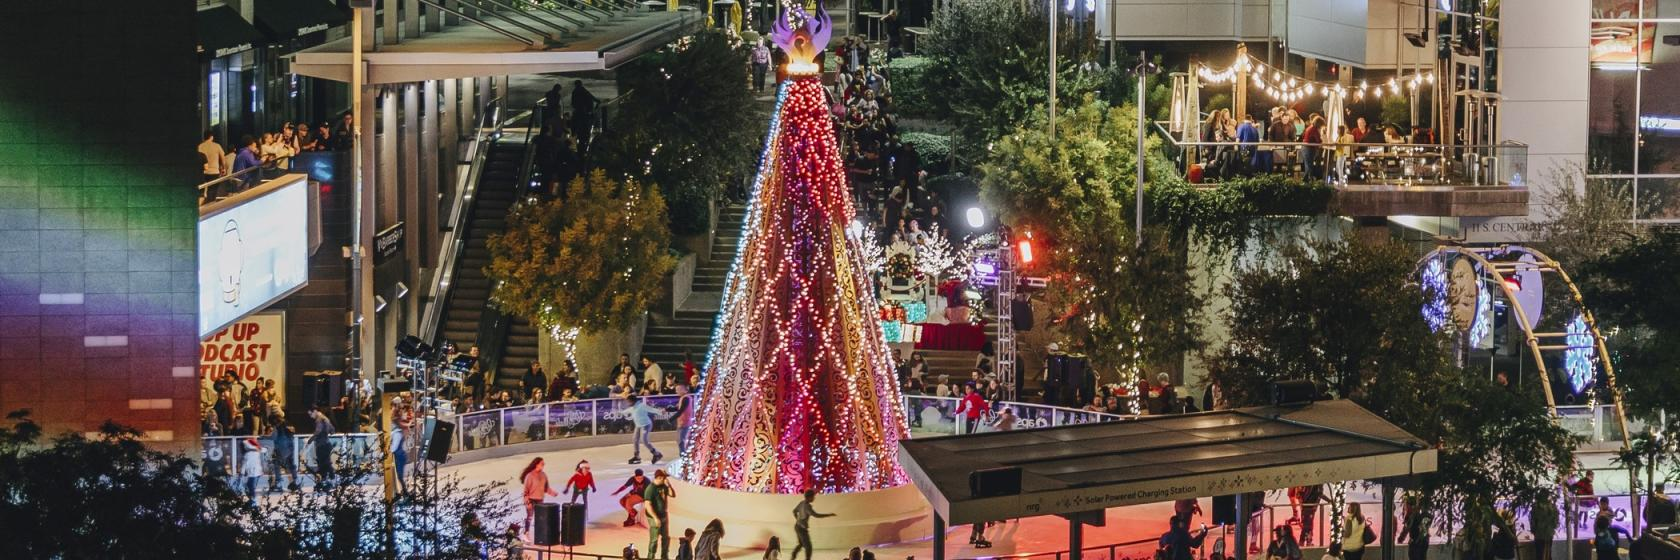 Christmas Eve Events Phoenix 2020 Holiday Events in Phoenix | ZooLights & Glendale Glitters